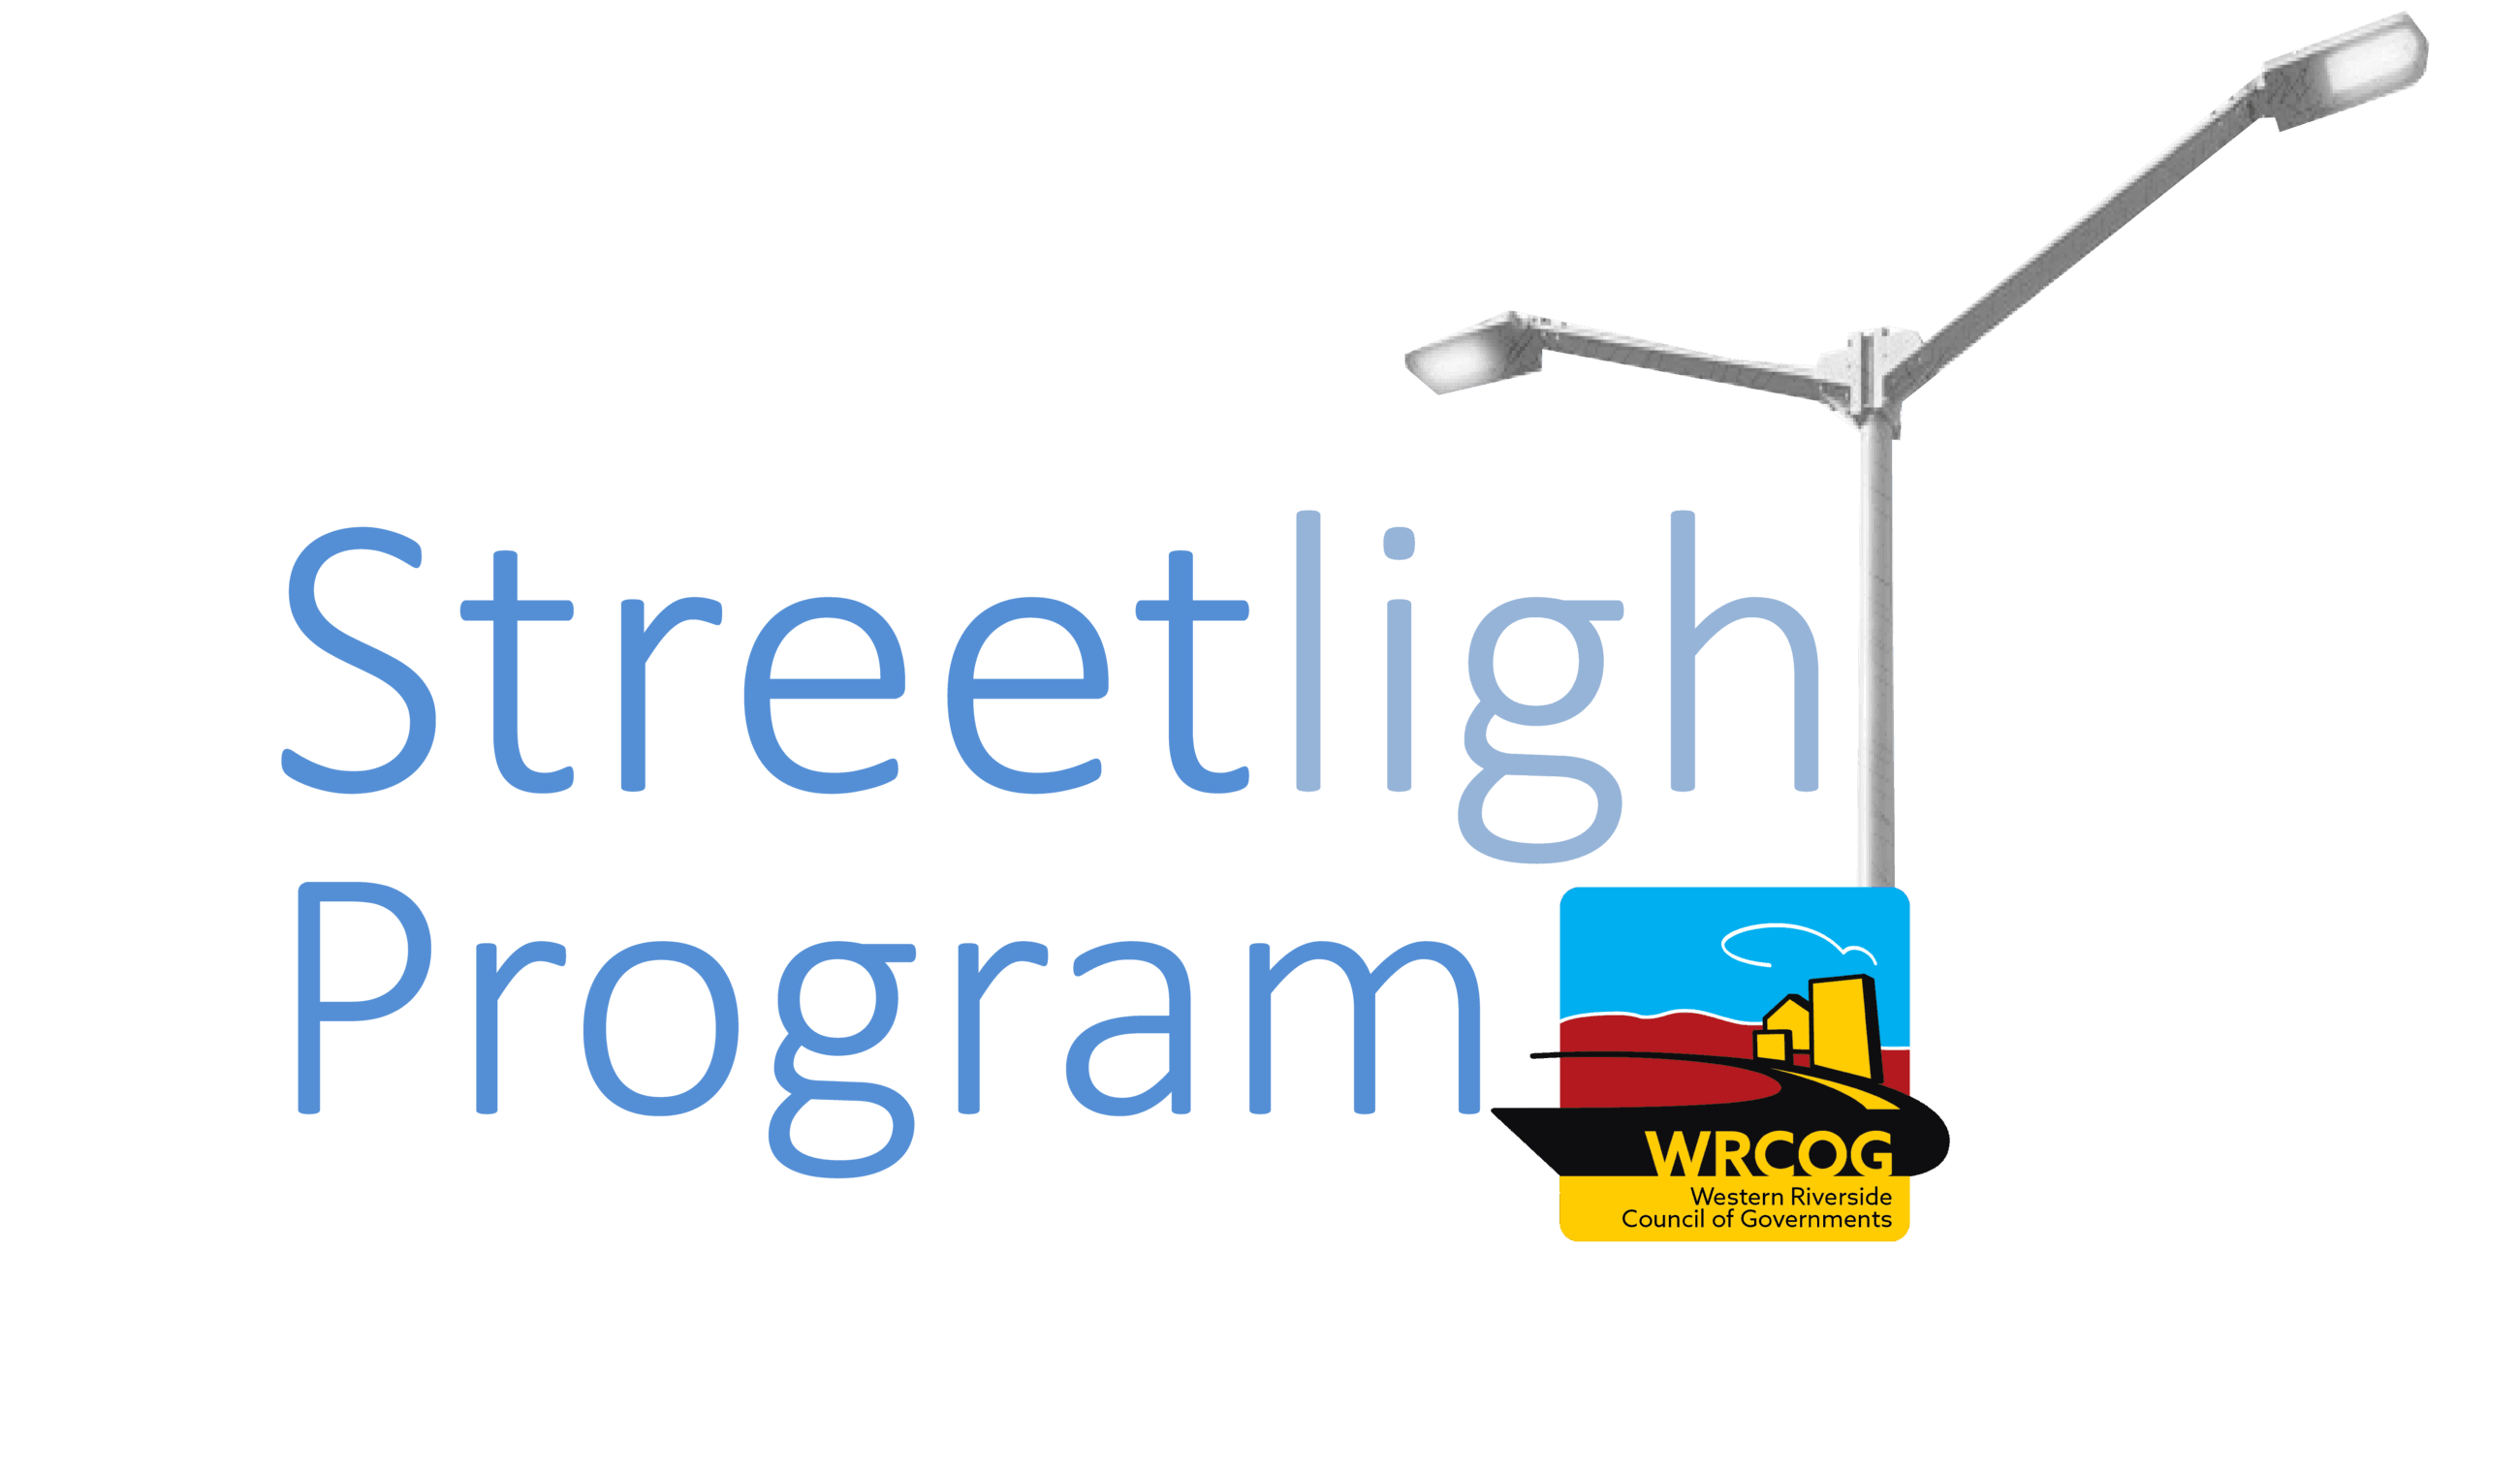 Streetlight Program Logo